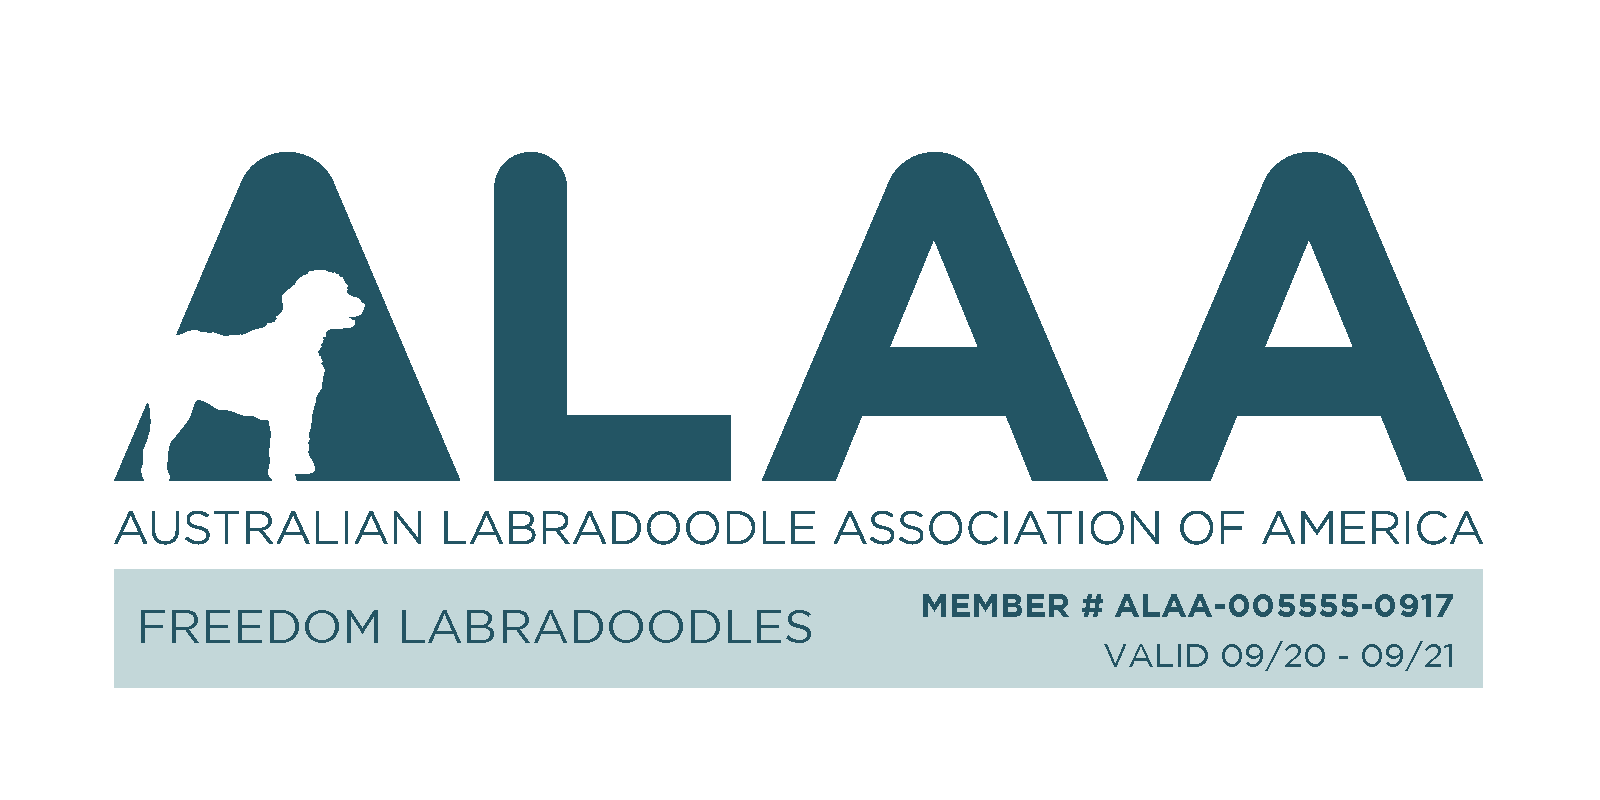 Australian Labradoodle Association of America Certification